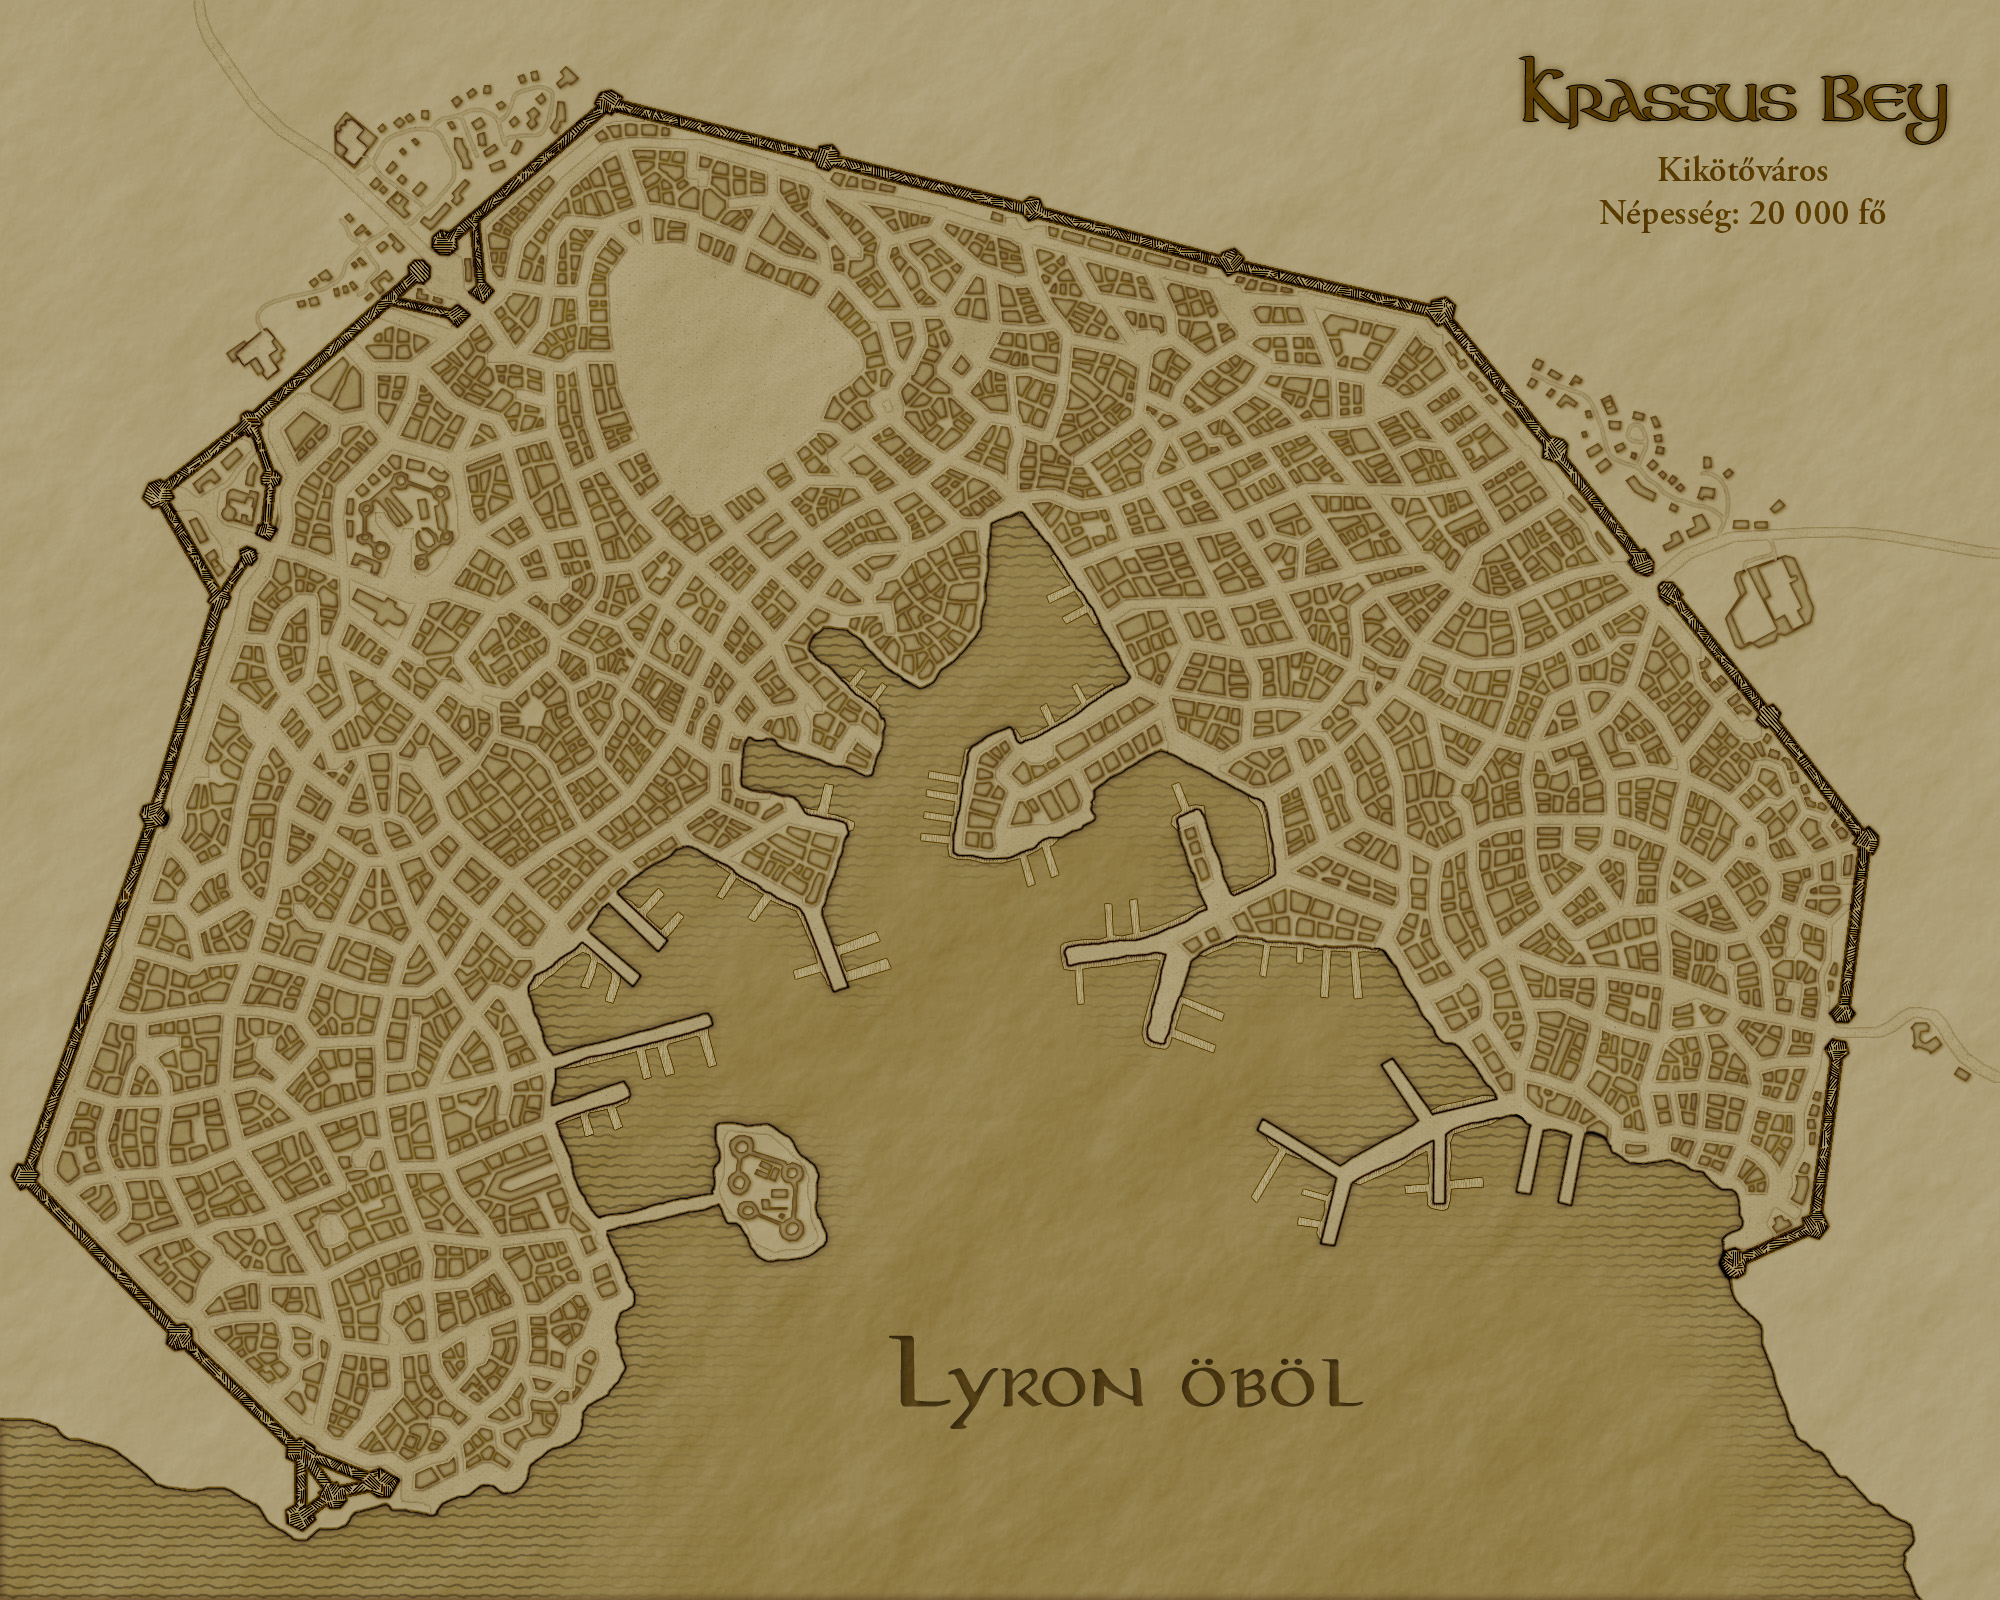 Krassus Bey (City Map)